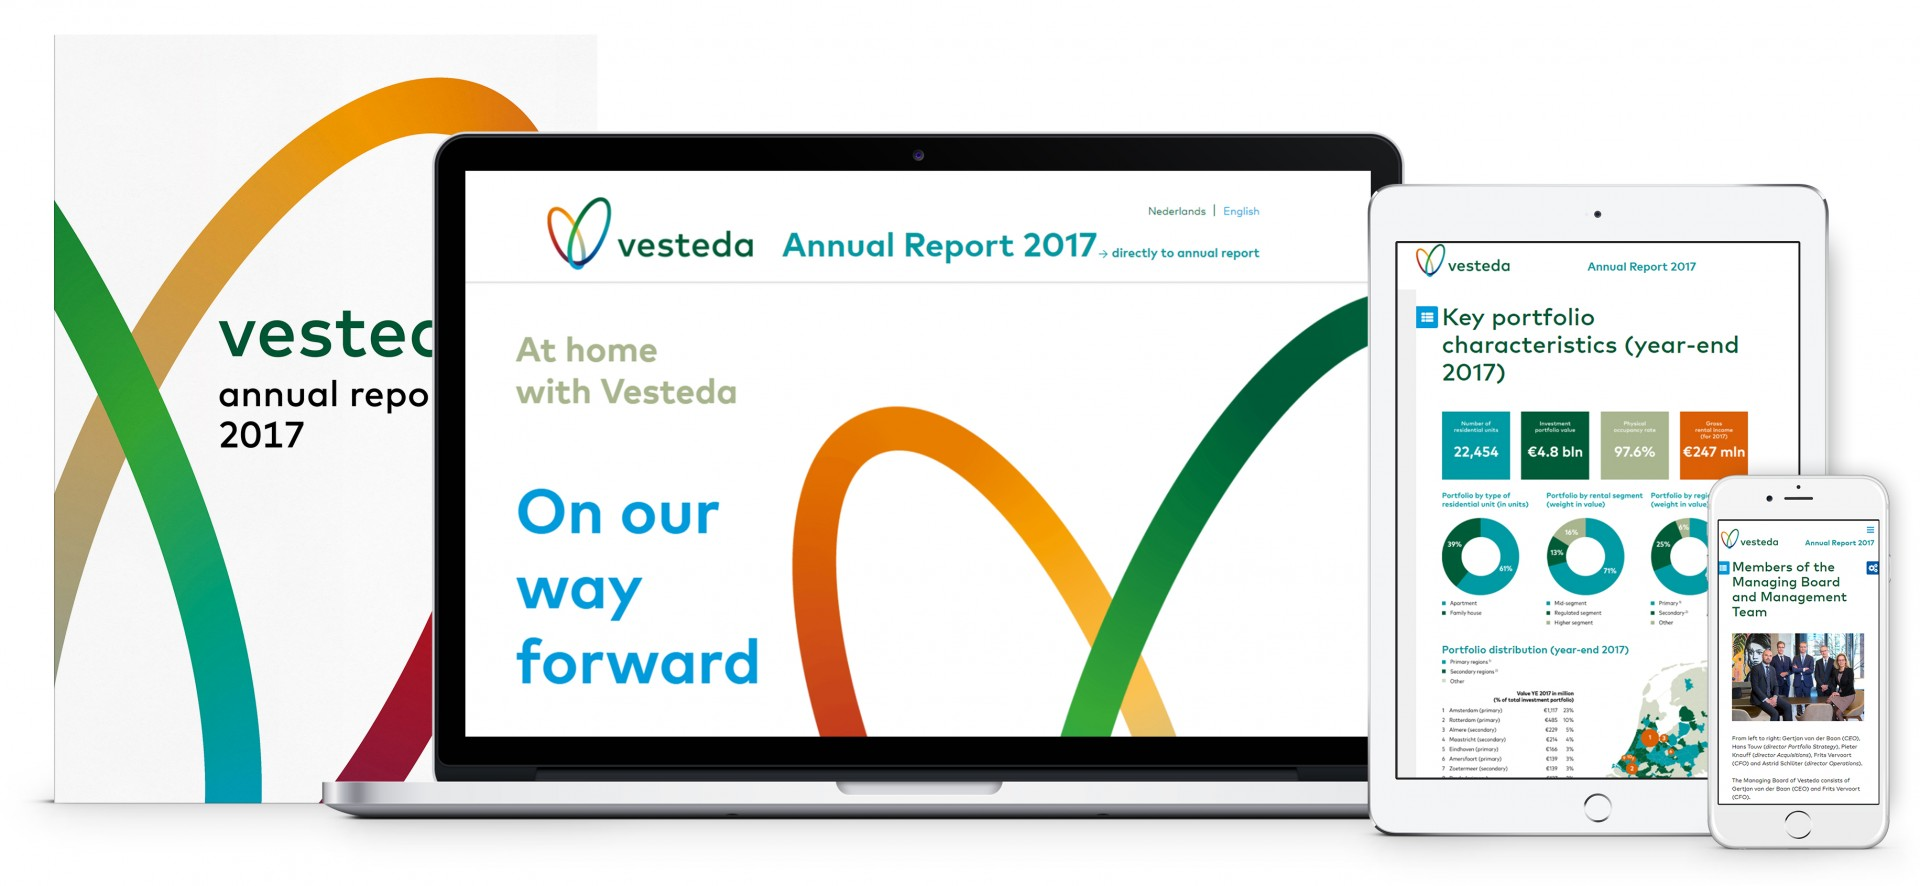 Vesteda - Annual Report 2017